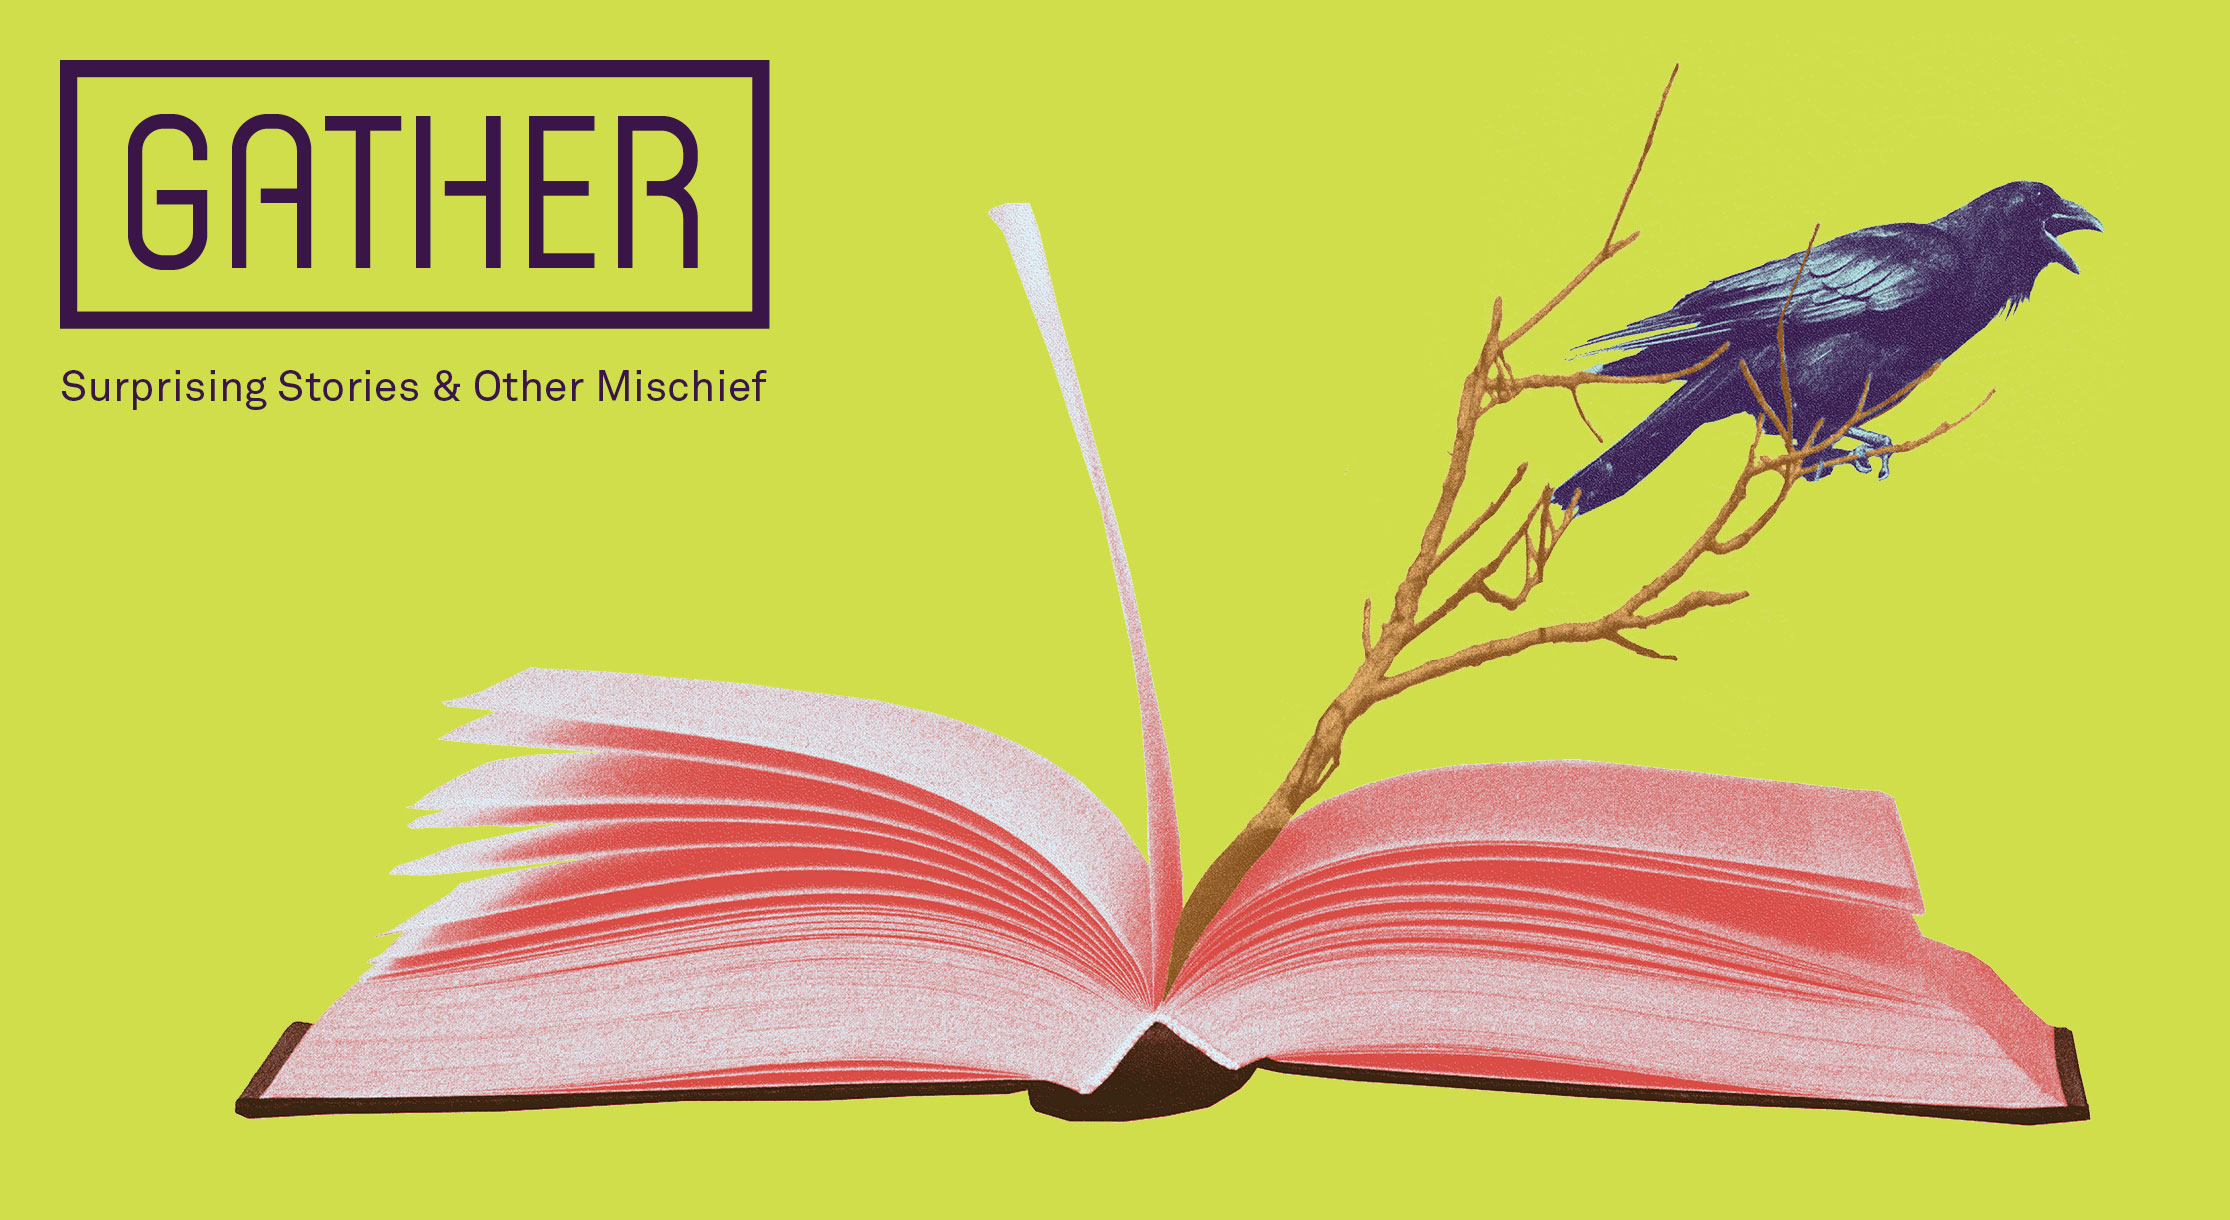 Gather: Surprising Stories & Other Mischief